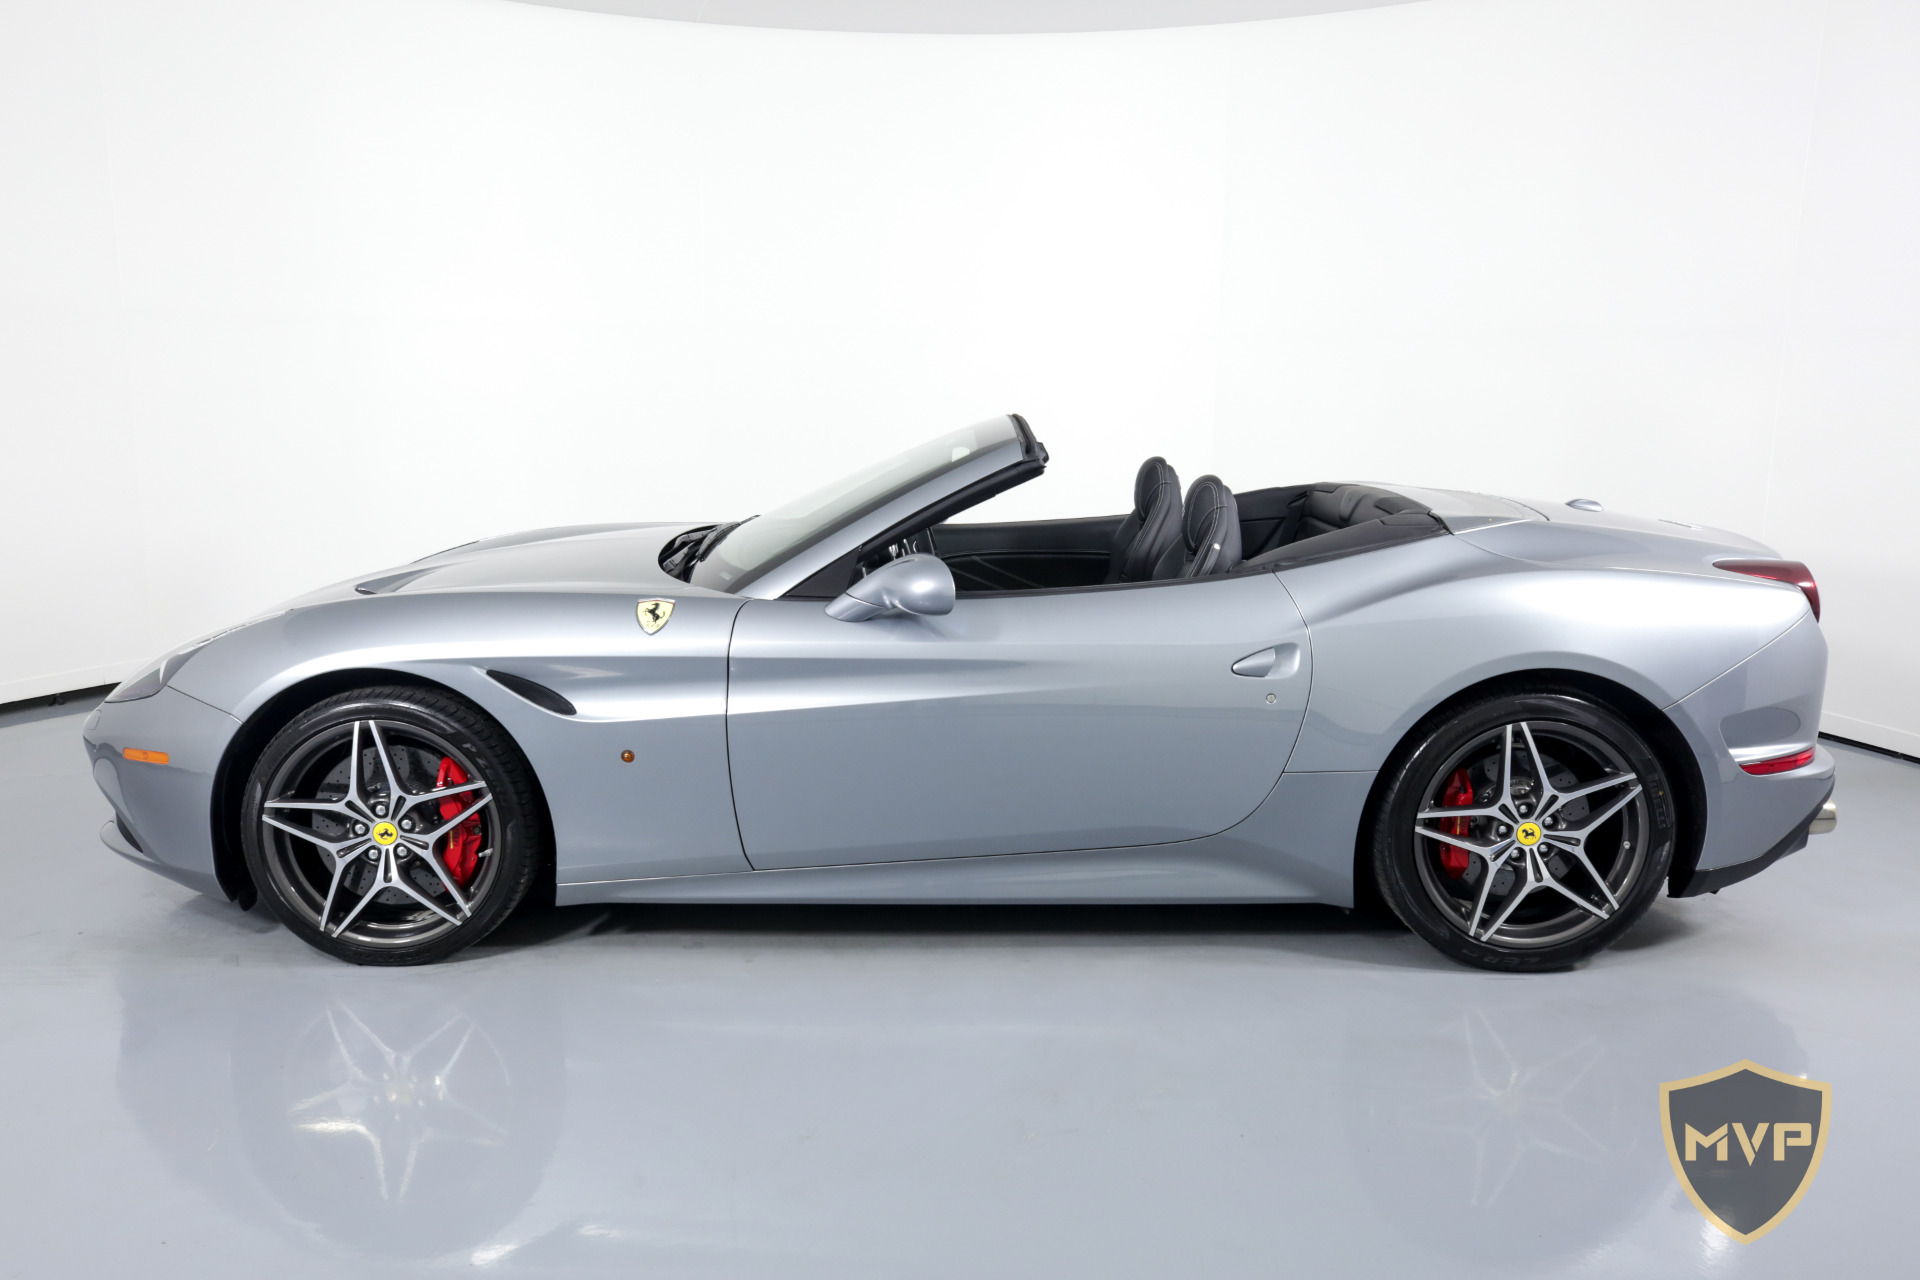 share send to phone 1 photos 786 877 4317 details 2015 ferrari california t prices starting at ...